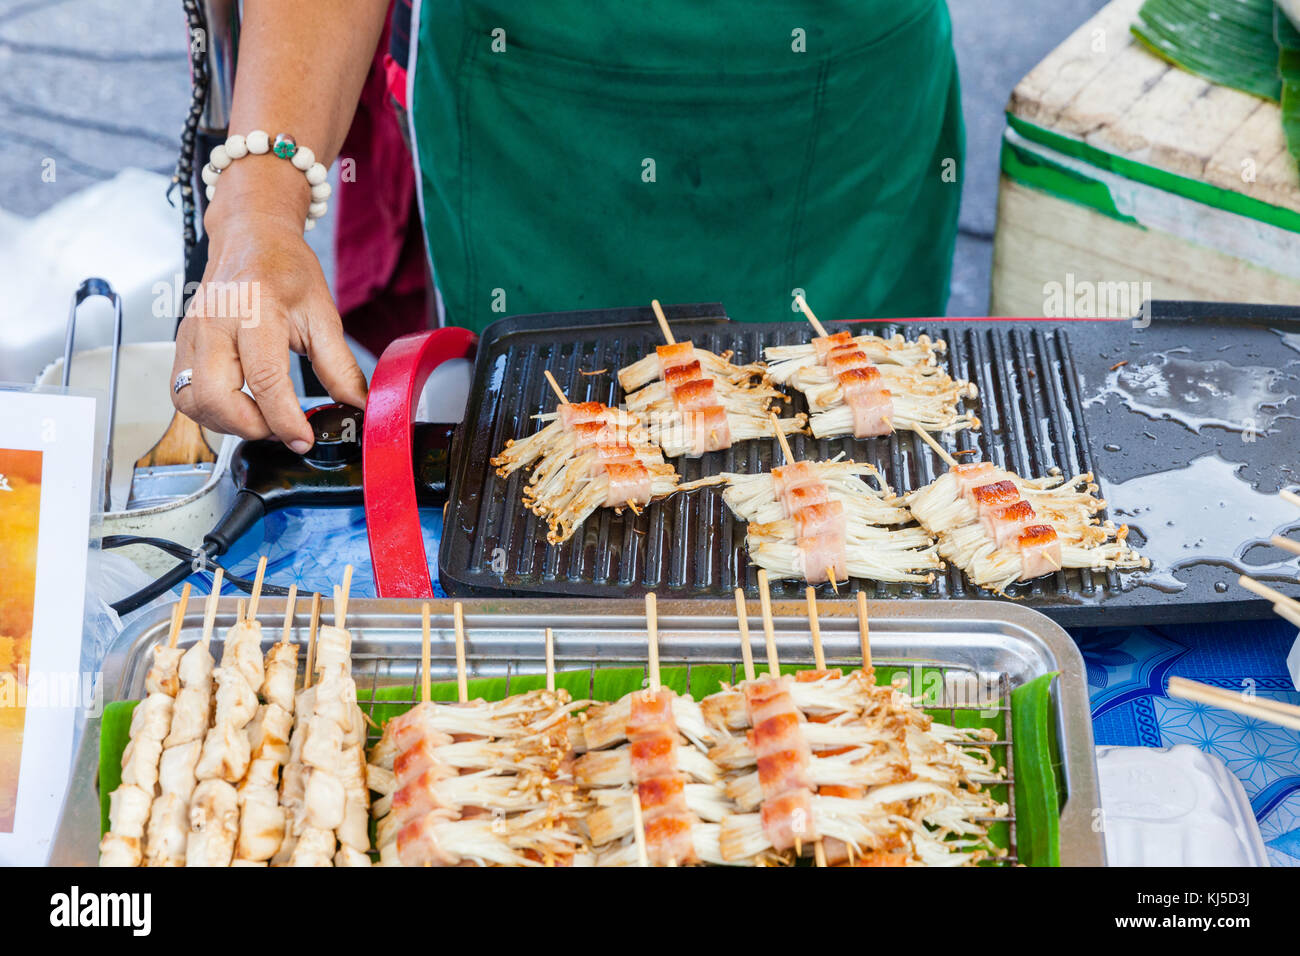 CHIANG MAI, THAILAND - AUGUST 21: Food vendor cooks at the Sunday Market (Walking Street) on August 21, 2016 in Stock Photo